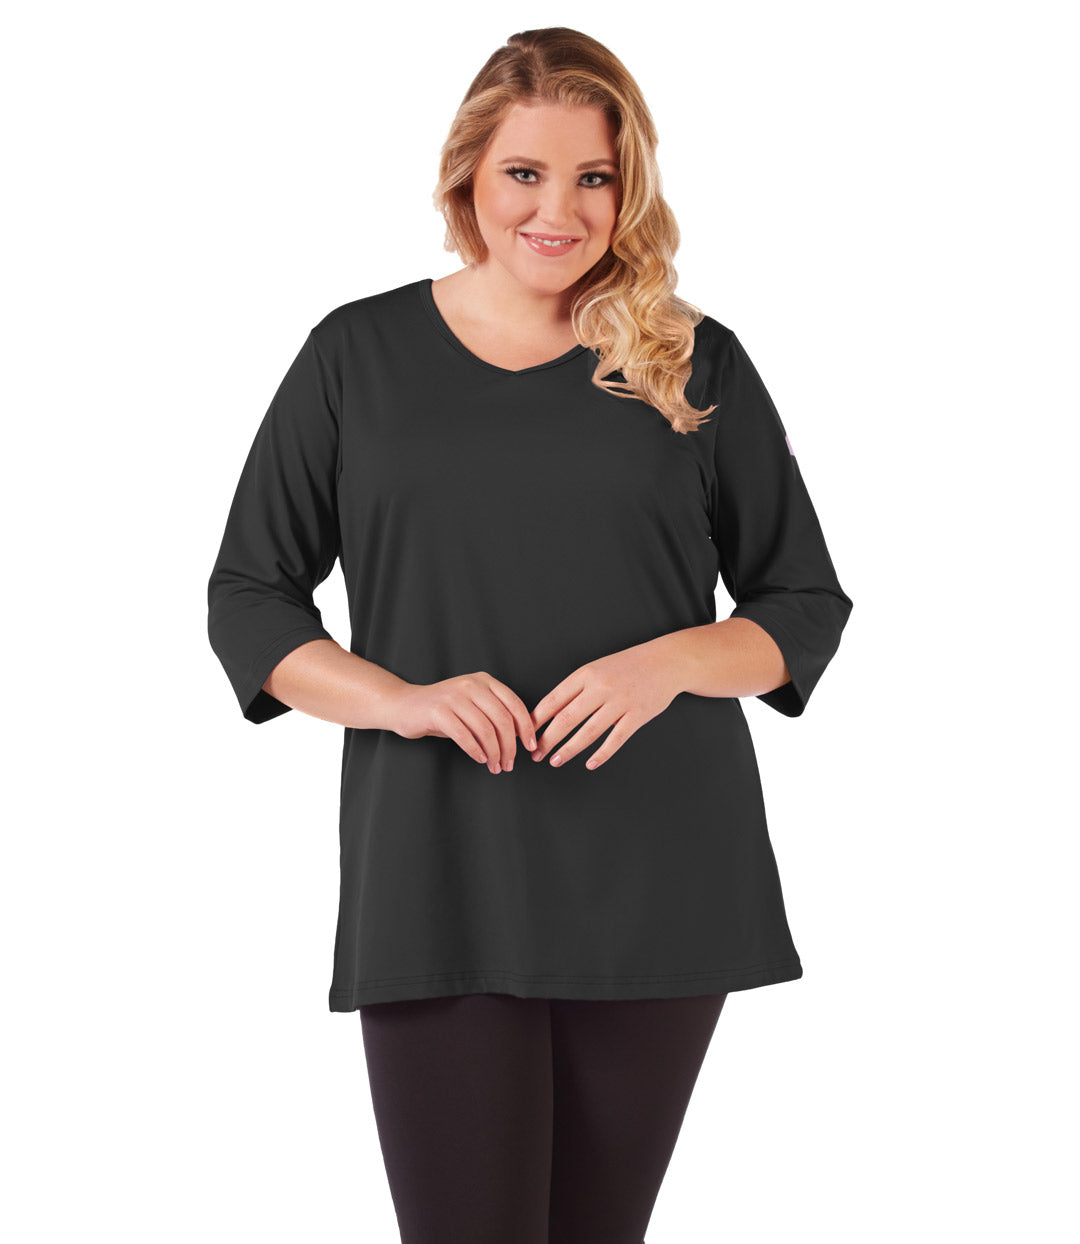 plus size activewear tunic top for women